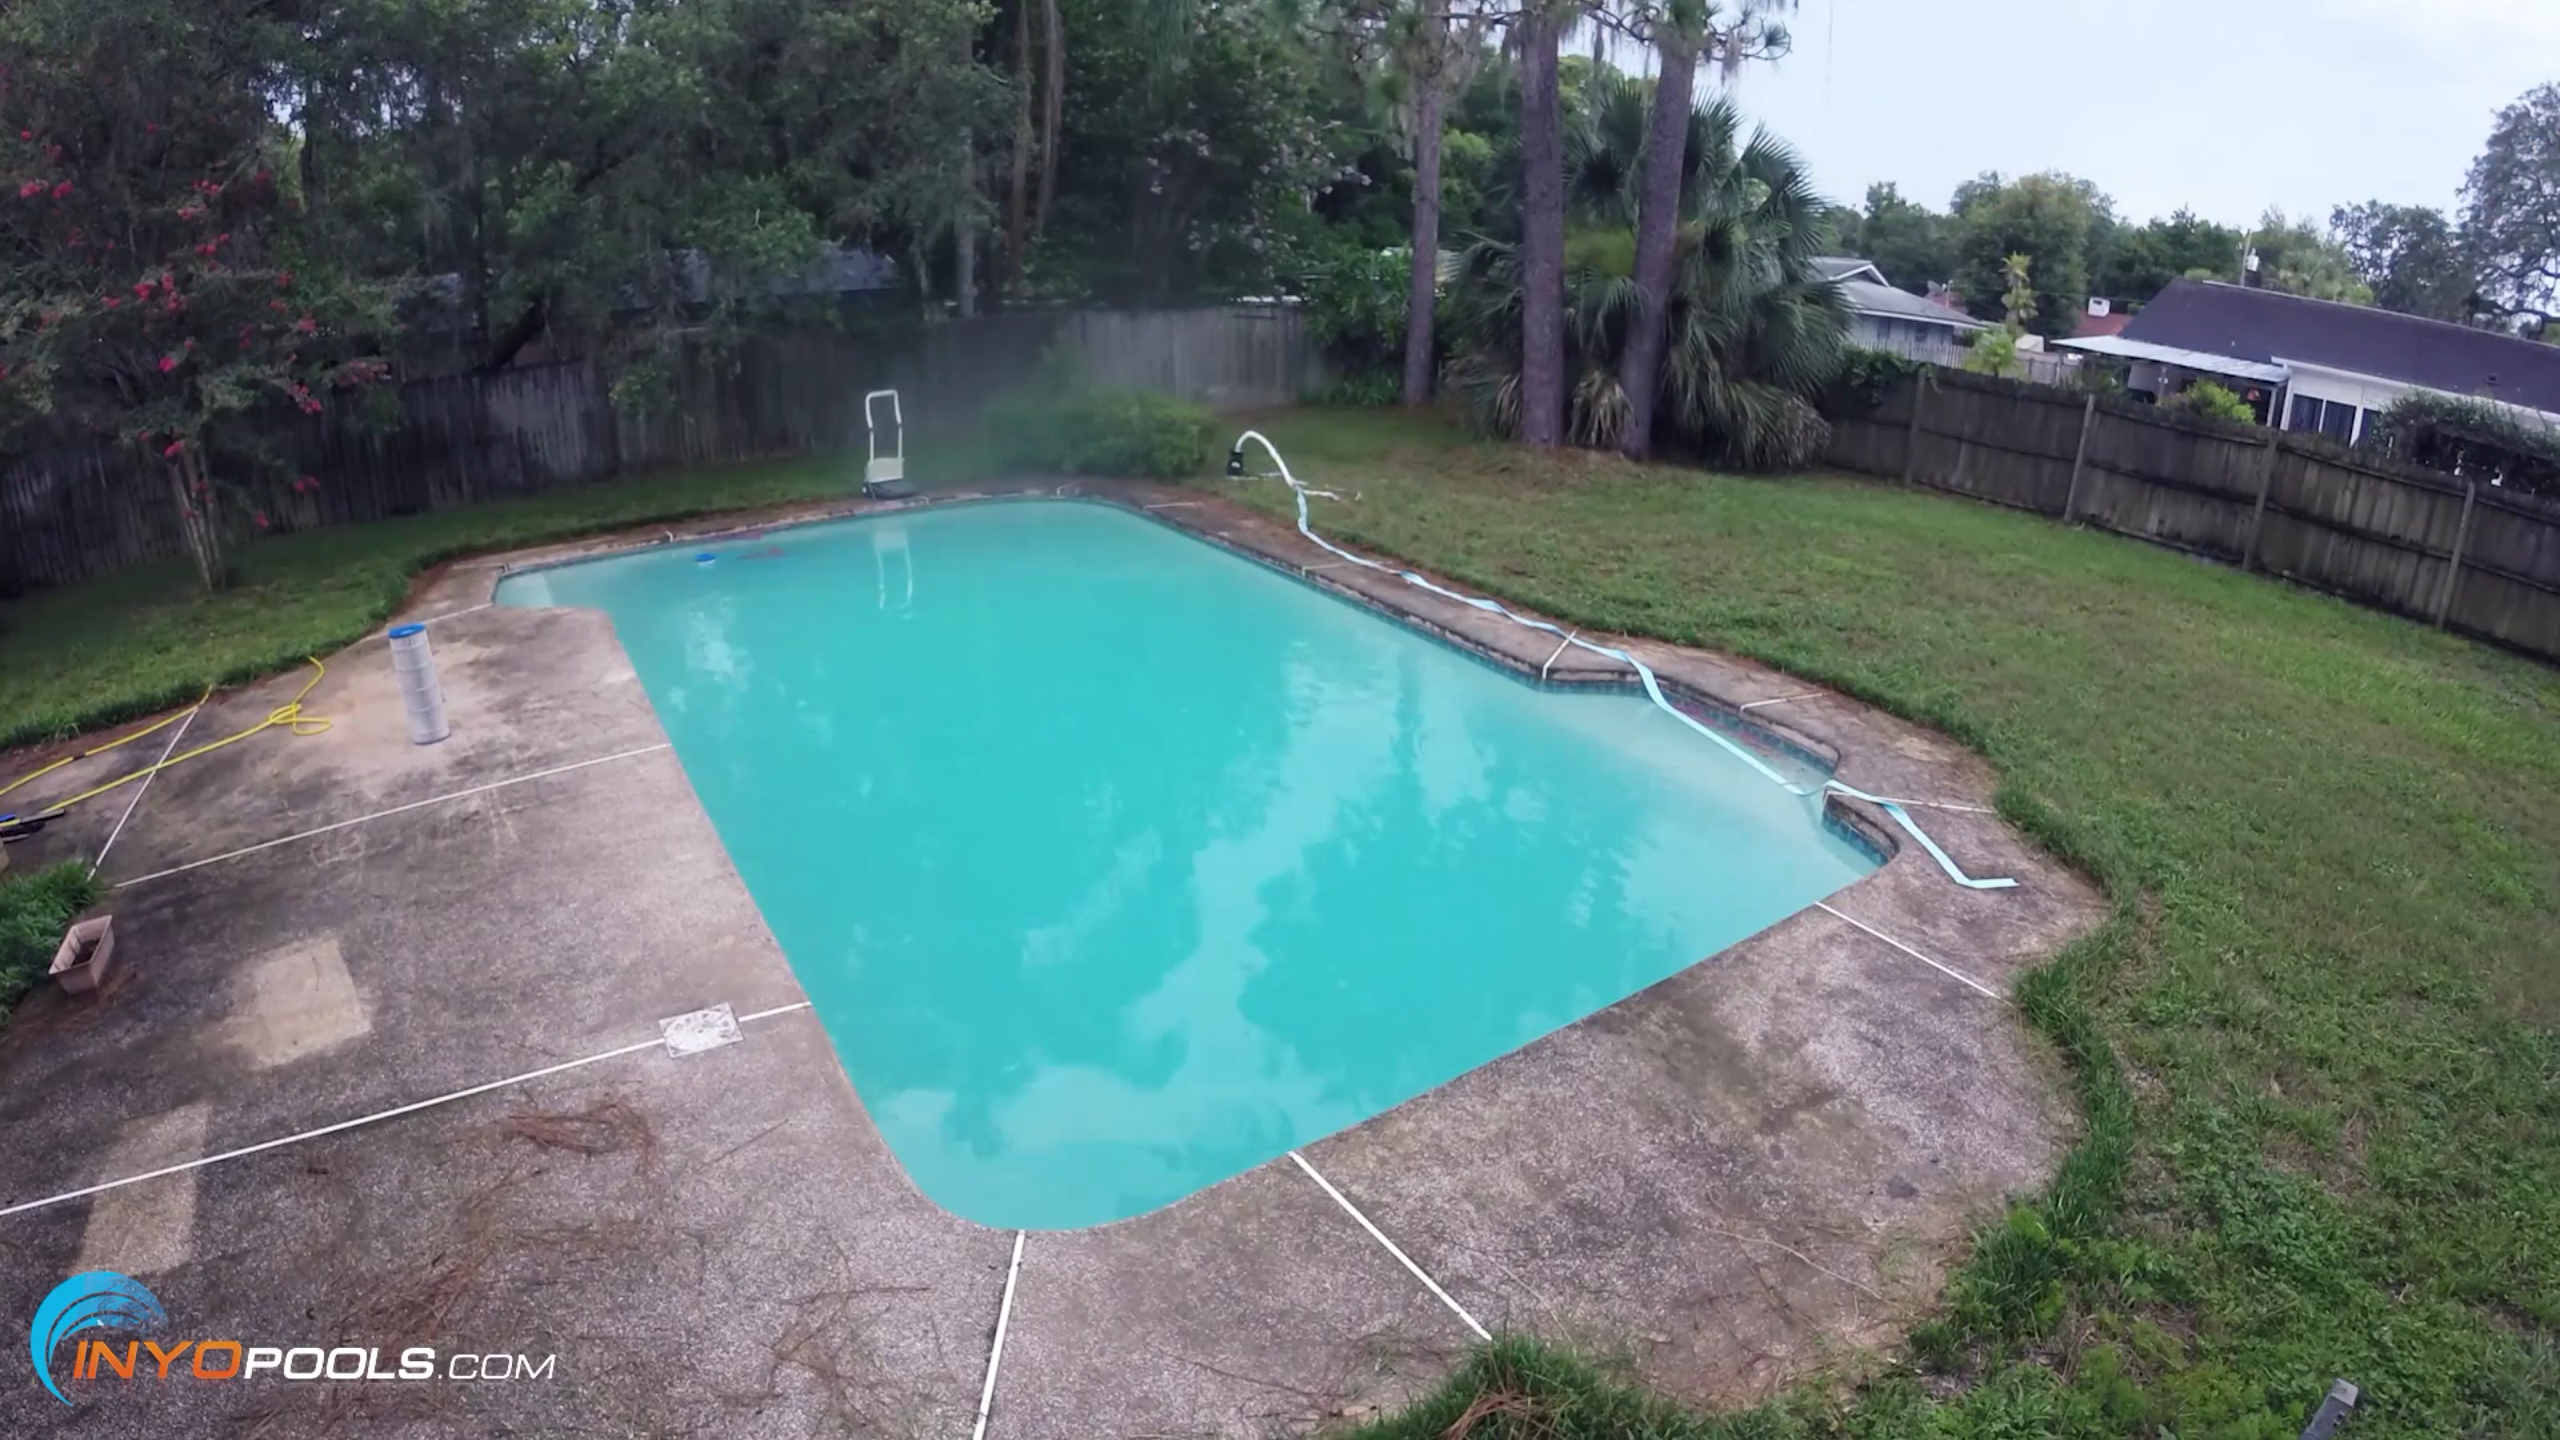 How to Clean a Green Pool? - INYOPools com